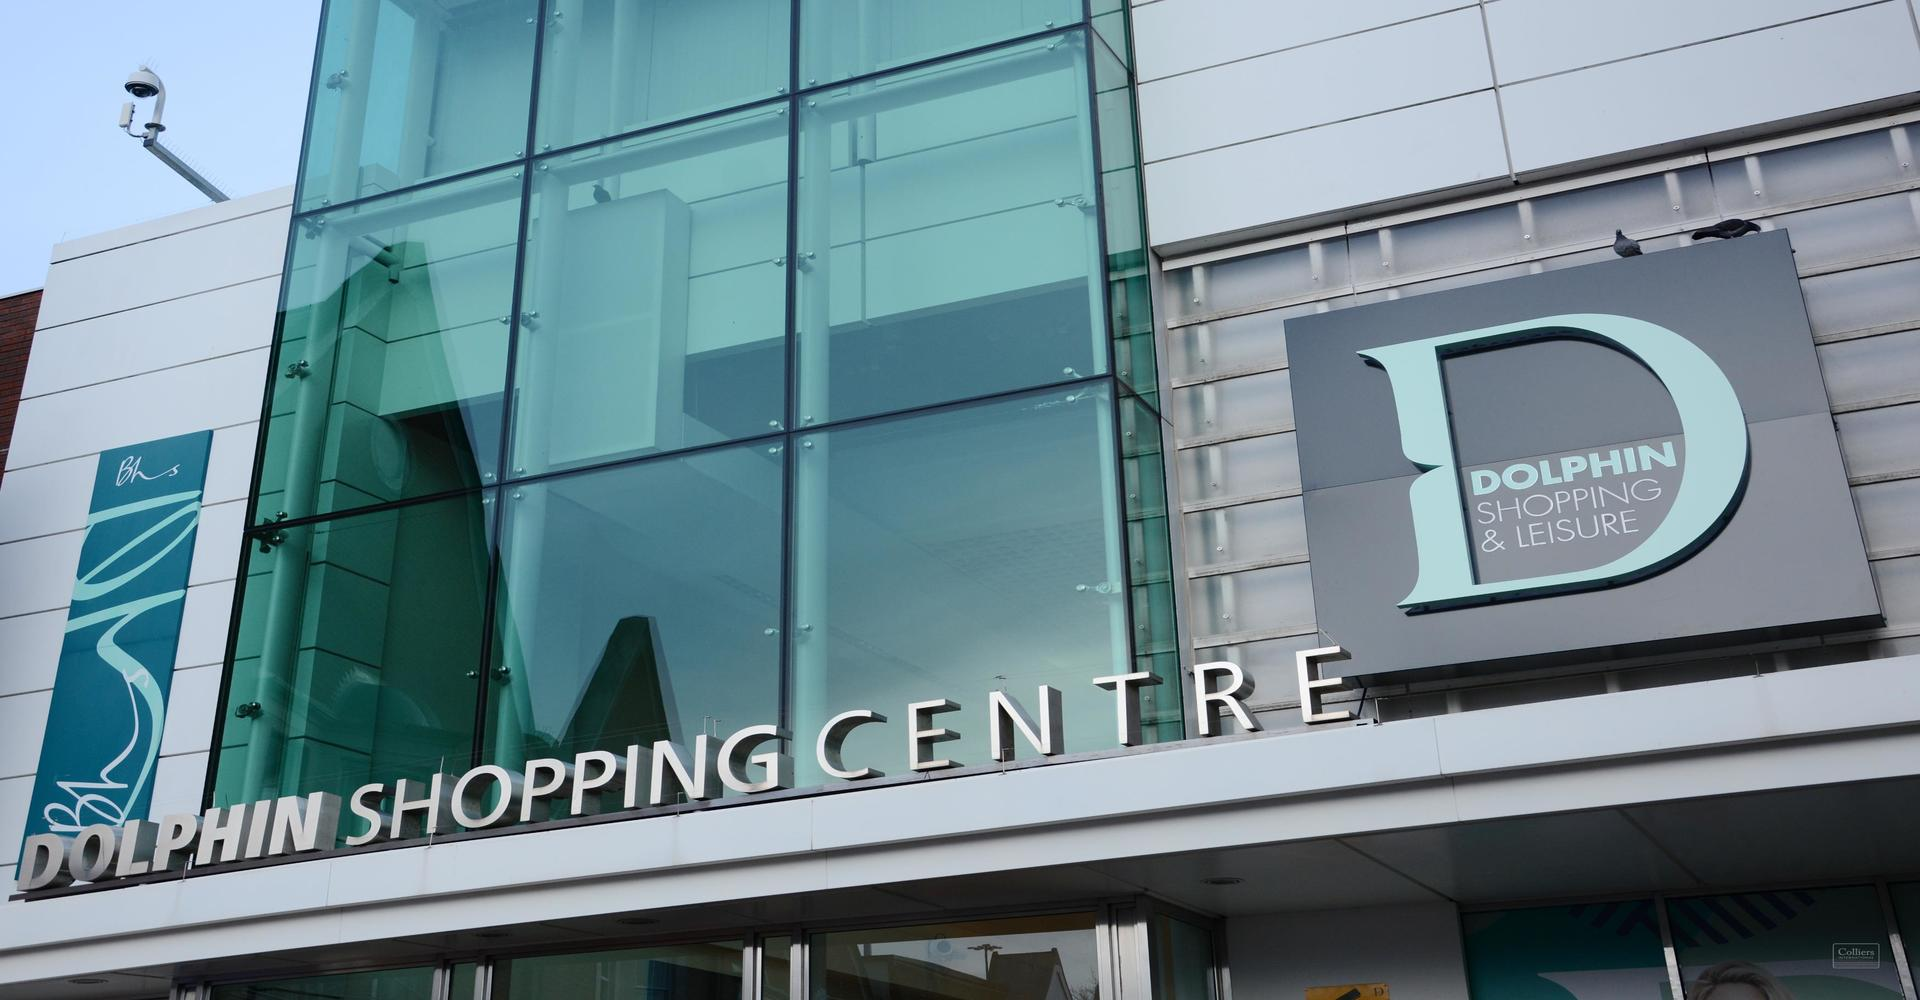 Dolphin Centre retailers to stay connected with new communications system